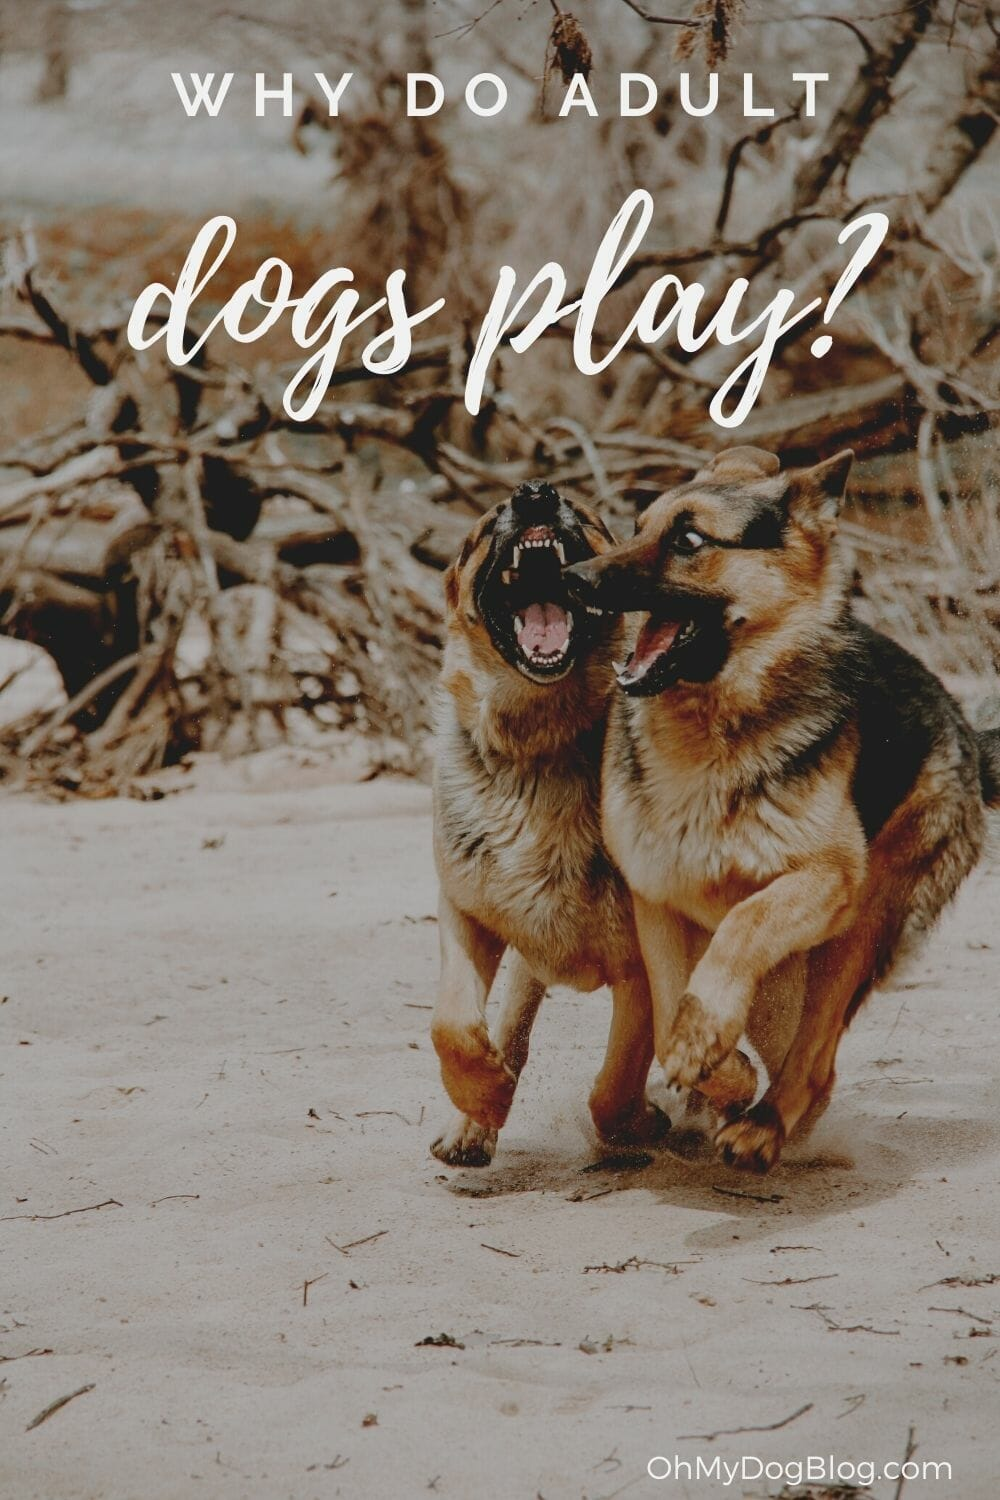 Two adult German shepherds play a game of chase across a beach. The text reads: Why do adult dogs play?